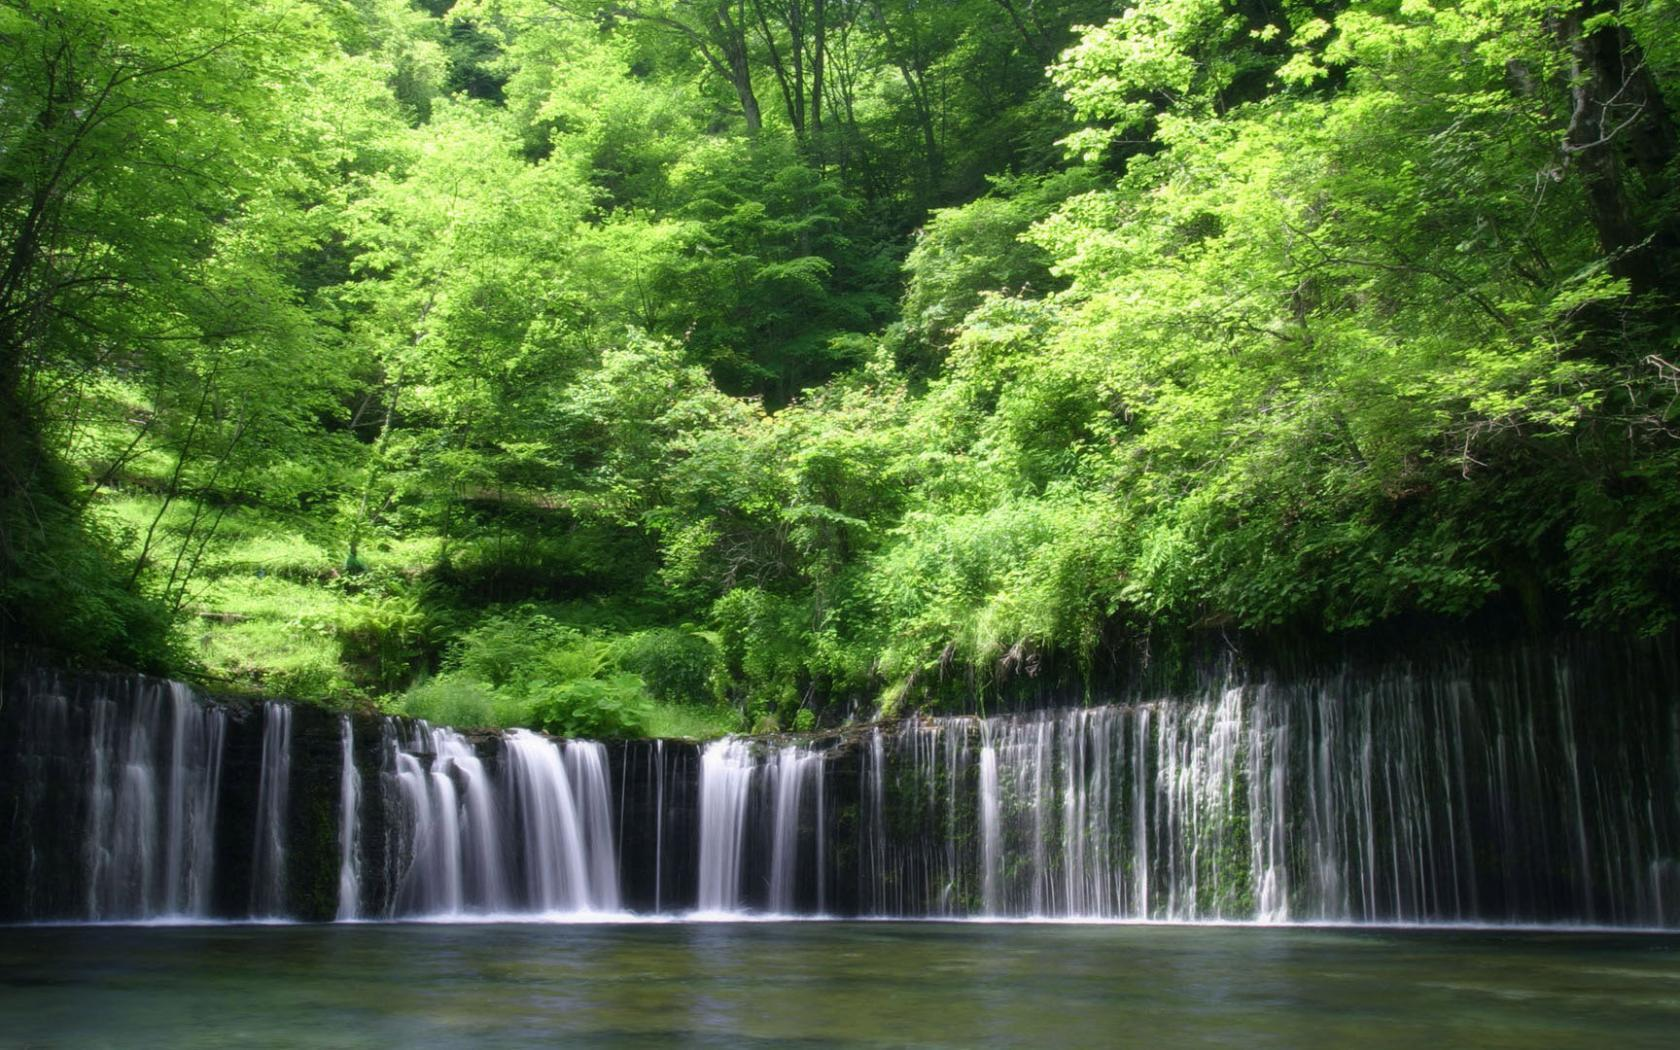 Simple Wallpaper Desktop Background Waterfall - VUXkfg6  Best Photo Reference_433354 .jpg